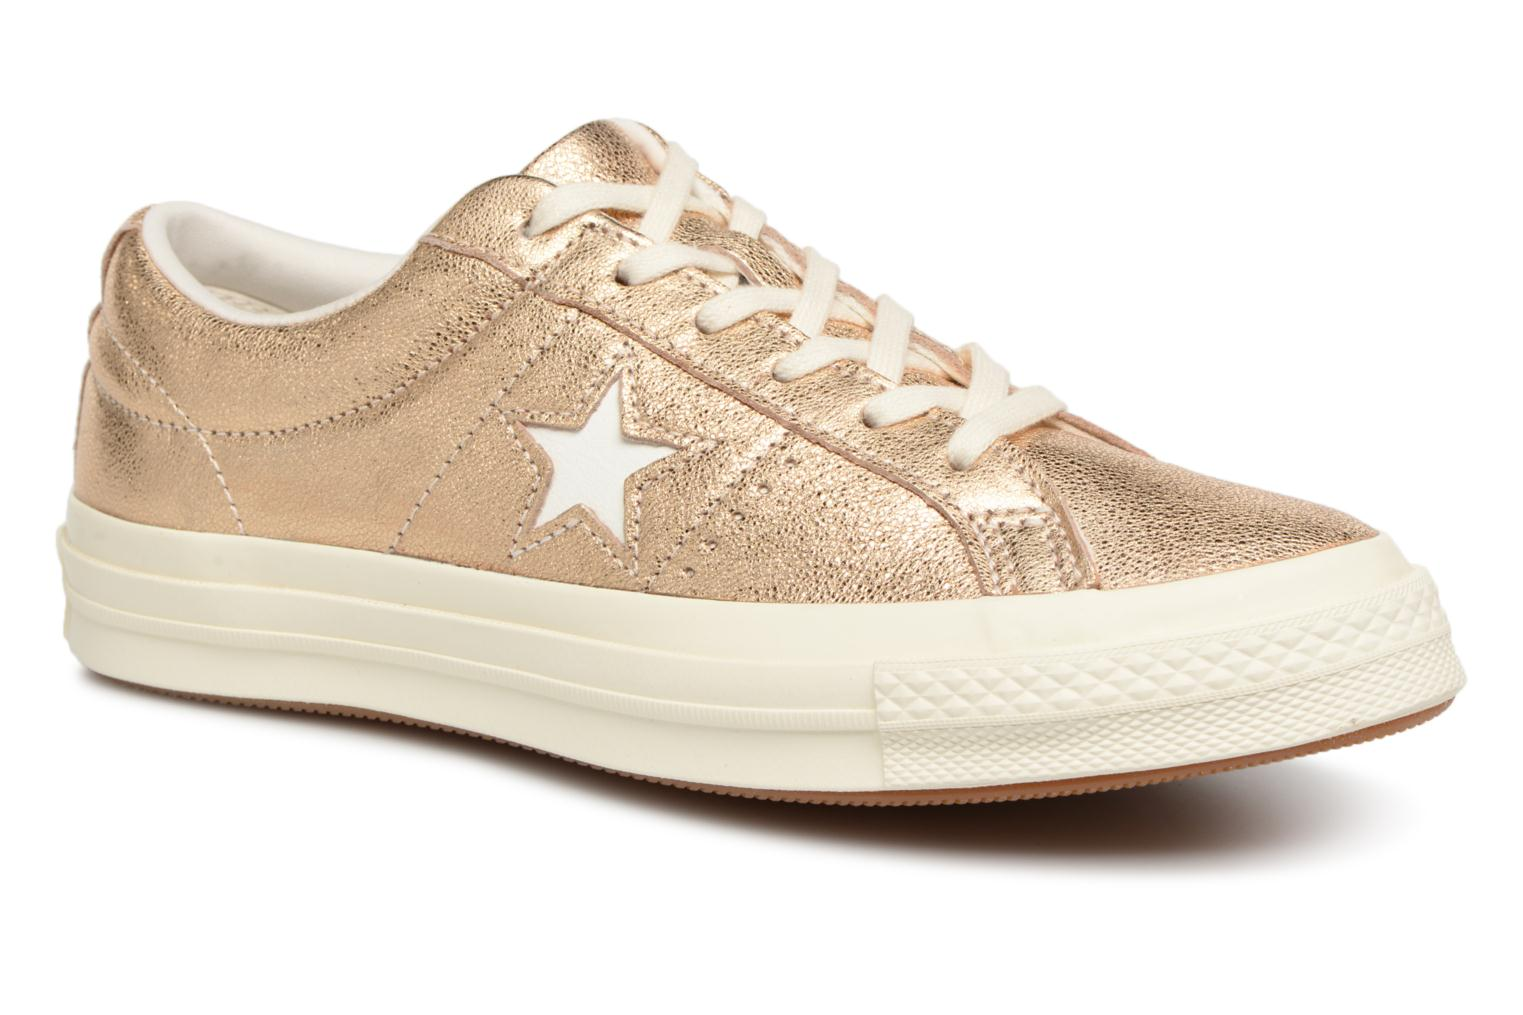 Sneakers One Star Ox W by ConverseConverseGoud en bronsPaar schoenen - Sneakers88875578593539Nubuck